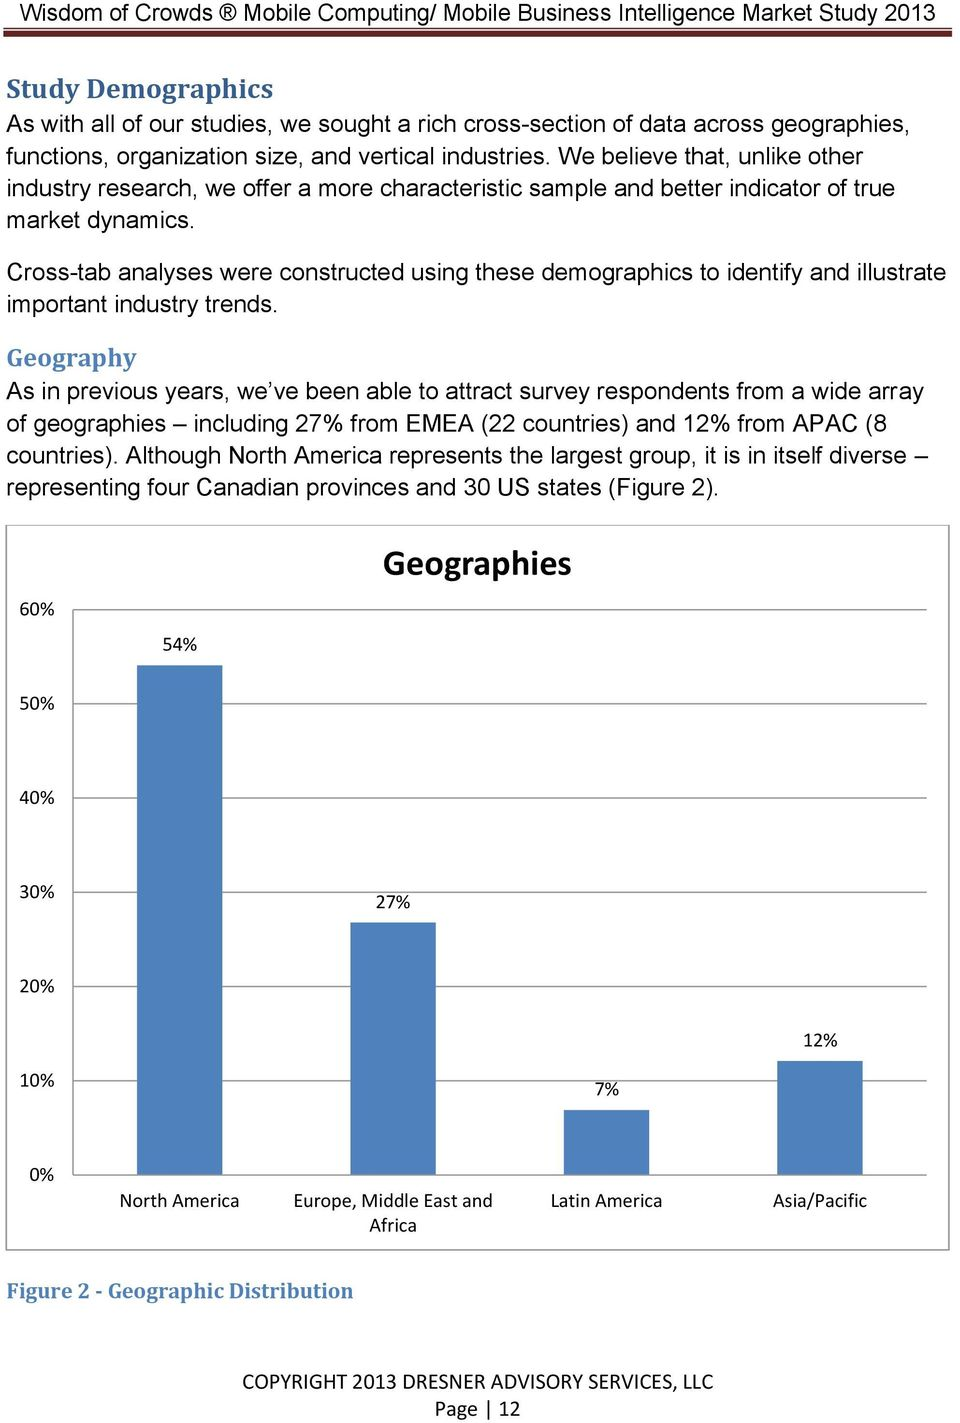 Cross-tab analyses were constructed using these demographics to identify and illustrate important industry trends.